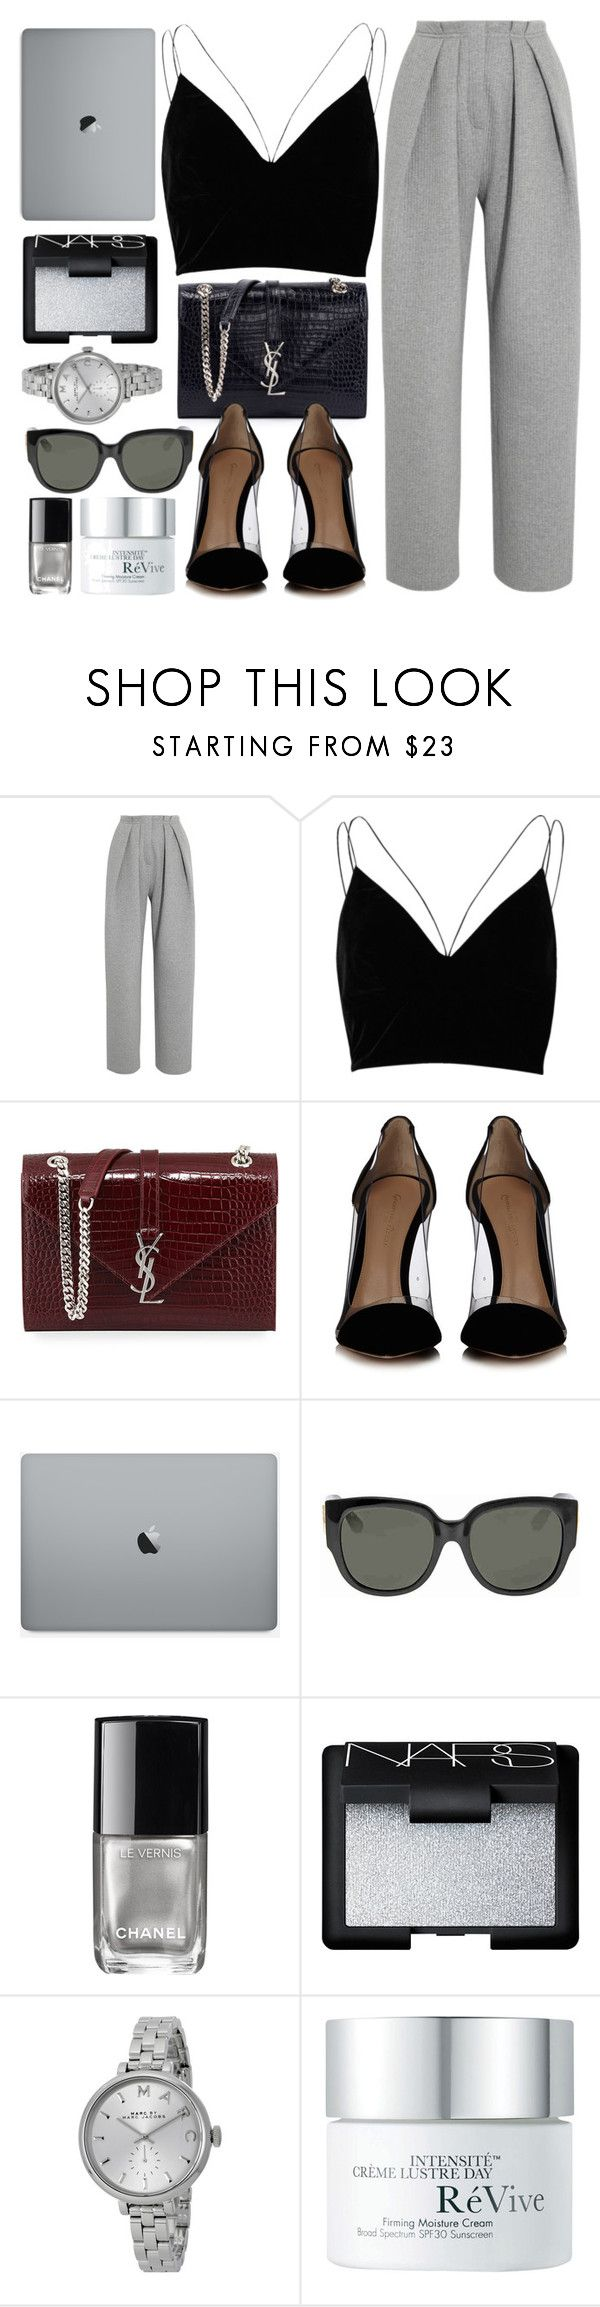 """""""Busy Days"""" by monmondefou ❤ liked on Polyvore featuring Vika Gazinskaya, River Island, Yves Saint Laurent, Gianvito Rossi, Gucci, Chanel, NARS Cosmetics, Marc by Marc Jacobs, RéVive and black"""